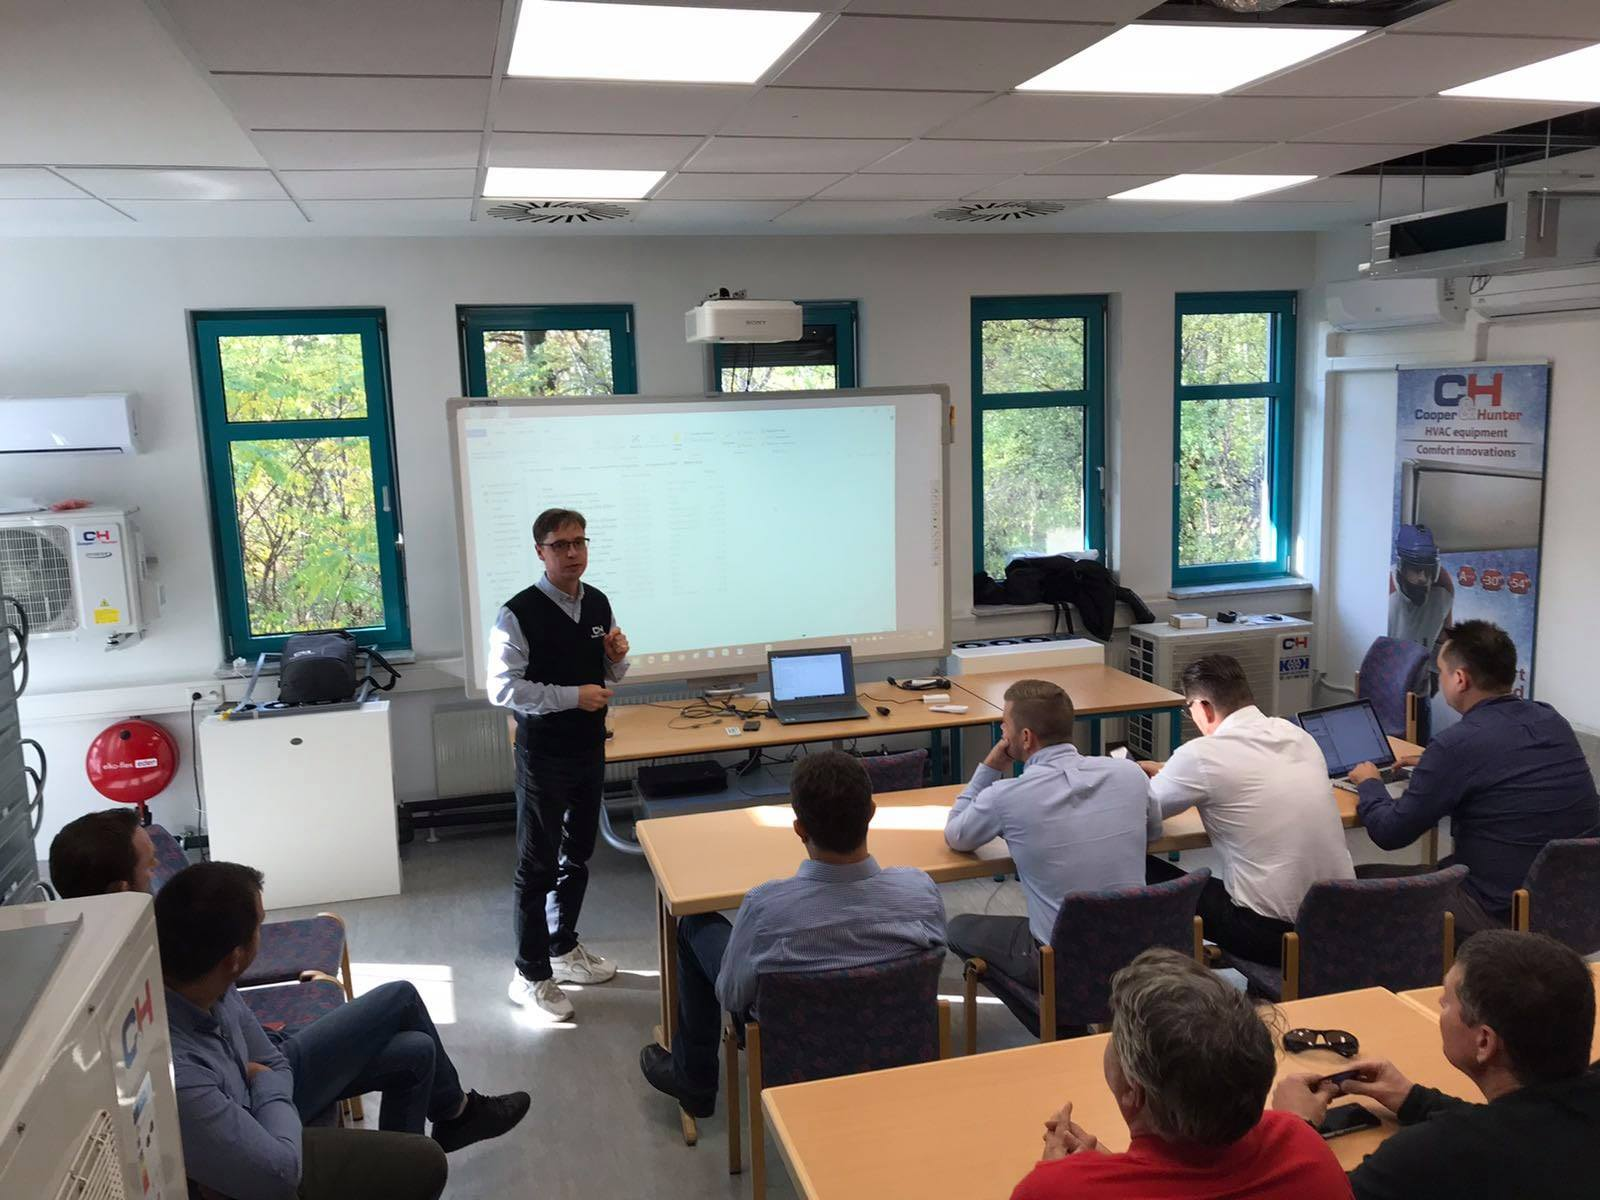 At the training center Cooper&Hunter in Vienna, another workshop was held for leading engineers of European dealers from several countries.